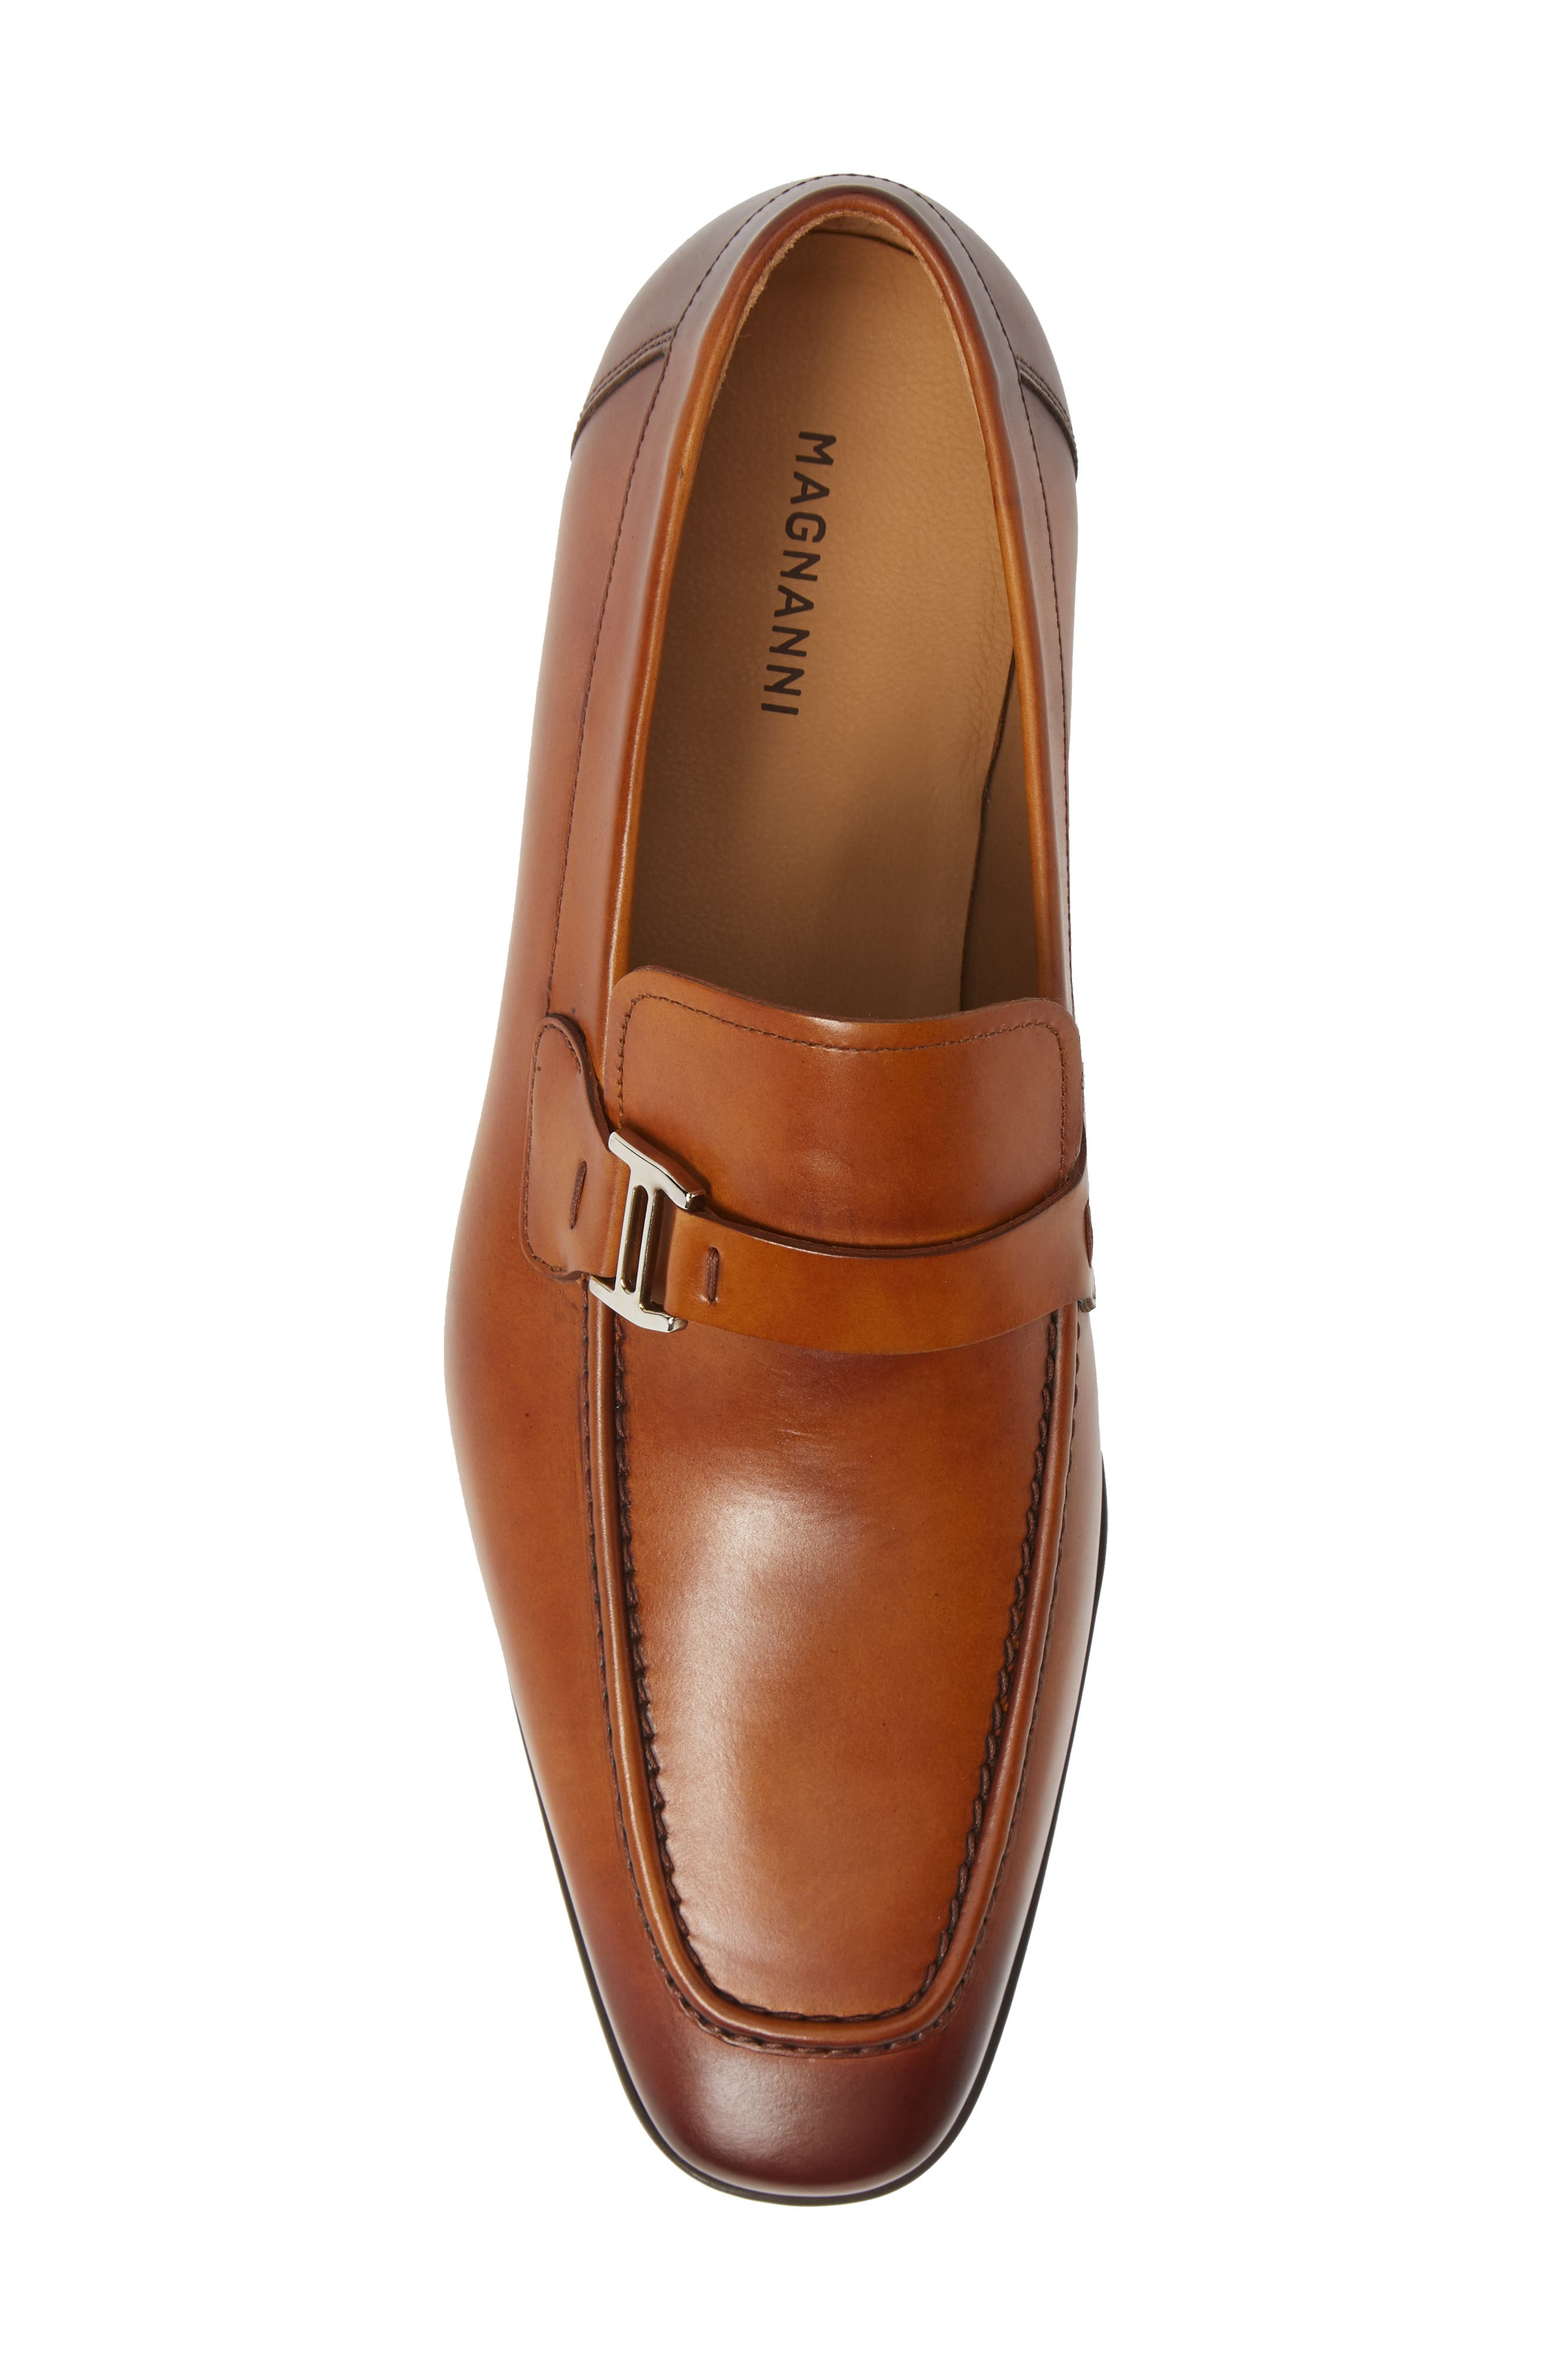 'Lino' Loafer,                             Alternate thumbnail 5, color,                             BROWN LEATHER